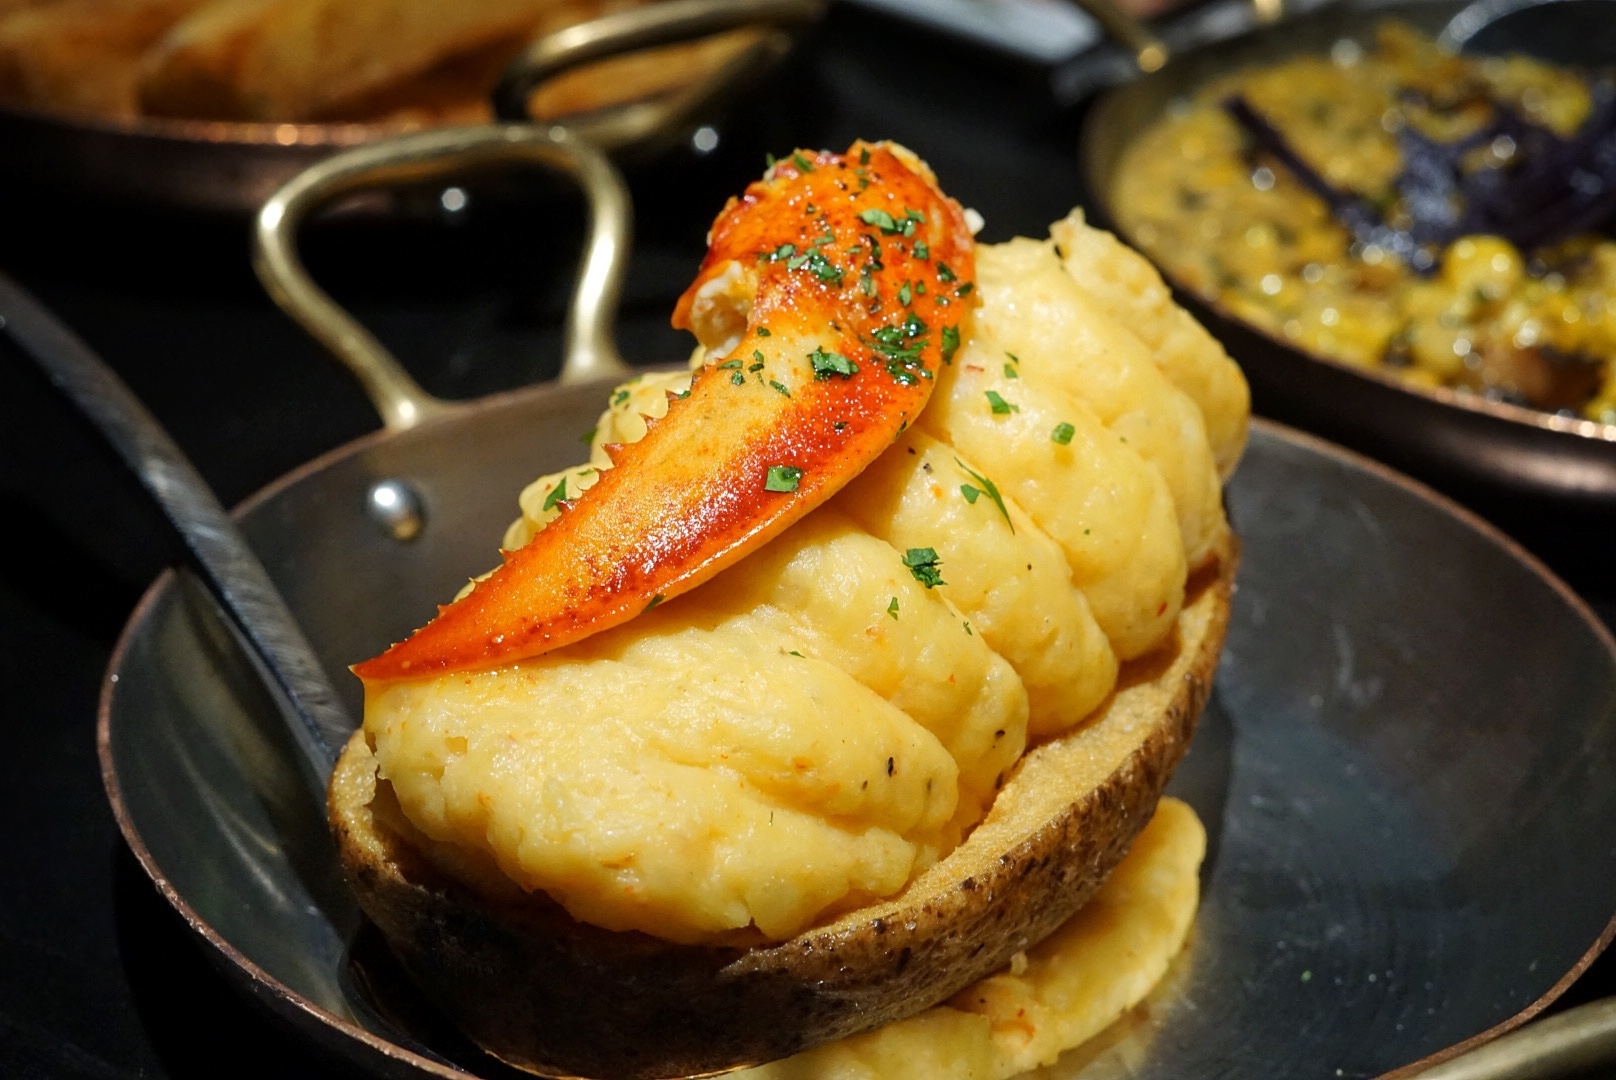 The most luxurious side dish you'll find on island is this Lobster & Truffle Twice Baked Potato.